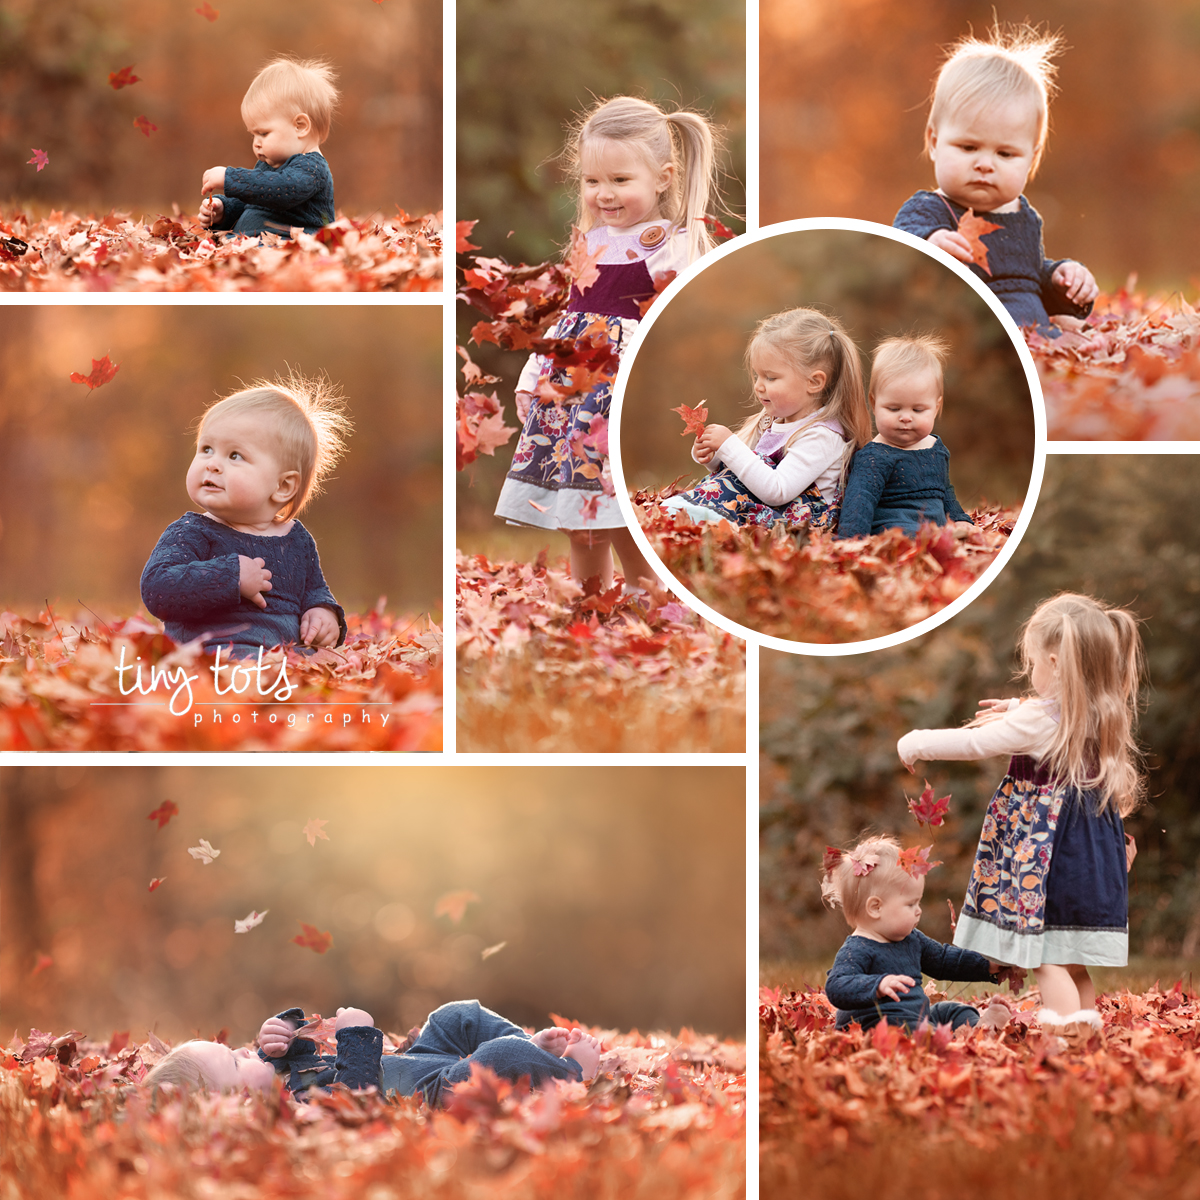 Kristen Fotta Photography A Vibrant And Colorful Fall Baby Photo Ideas